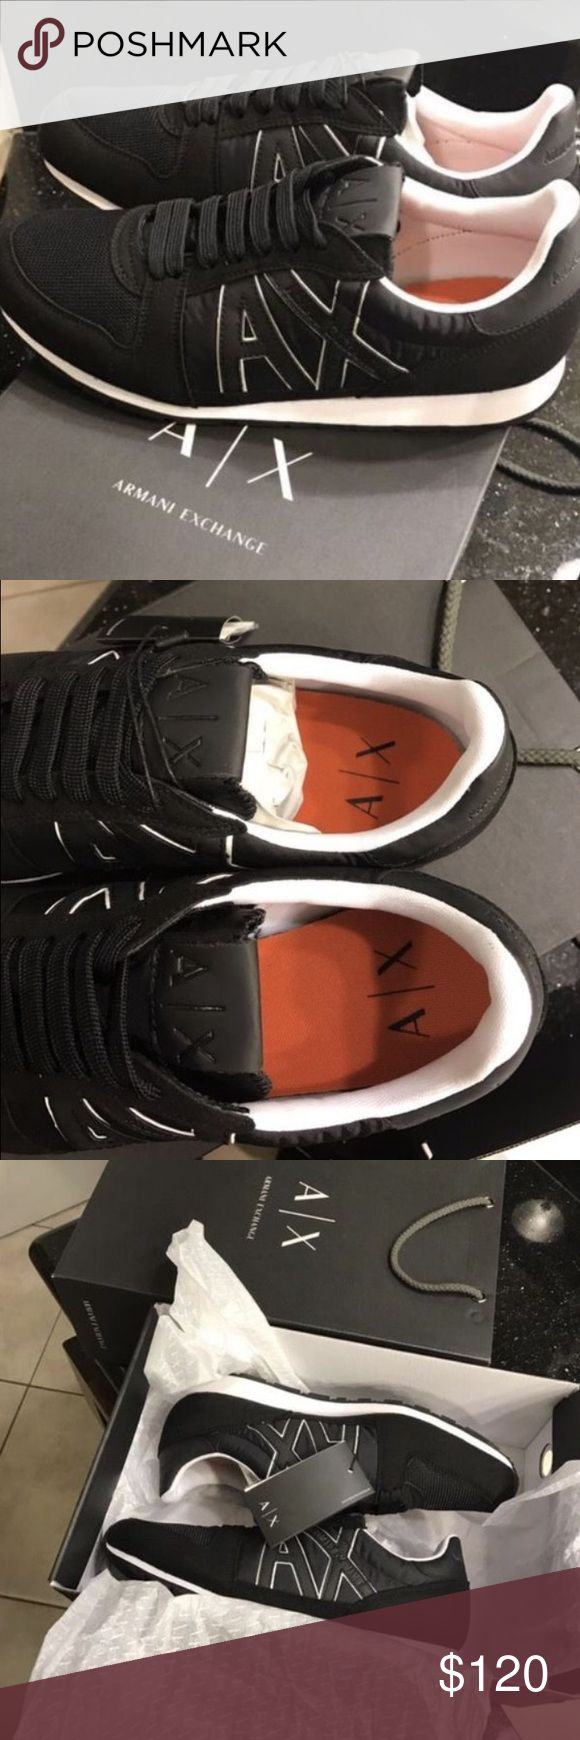 ARMANI SNICKERS BRAND NEW ARMANI SNICKERS. NEVER USED WITH TAGS AND BOX. SIZE 10 US MEN. AUTHENTIC ARMANI EXCHANGE A/X Armani Exchange Shoes Sneakers